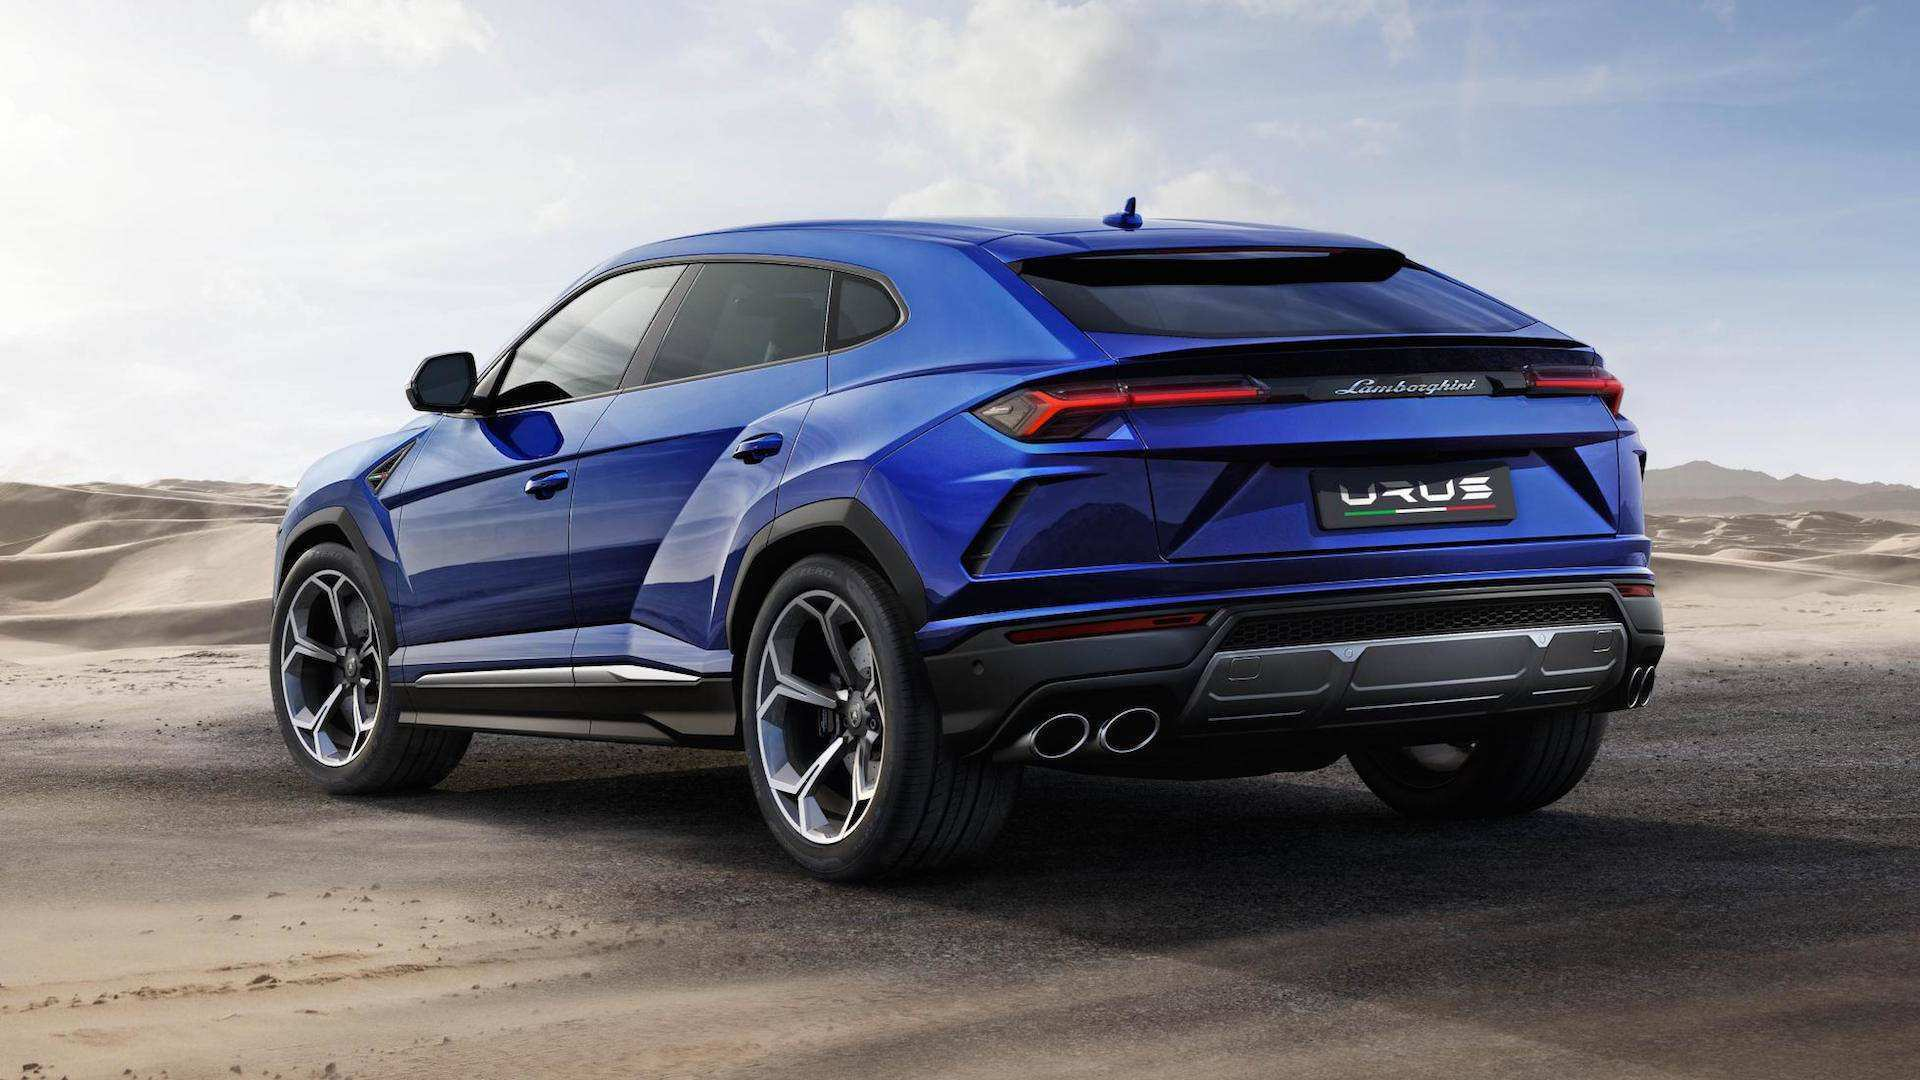 16 Gallery of 2019 Lamborghini Suv Price Specs with 2019 Lamborghini Suv Price